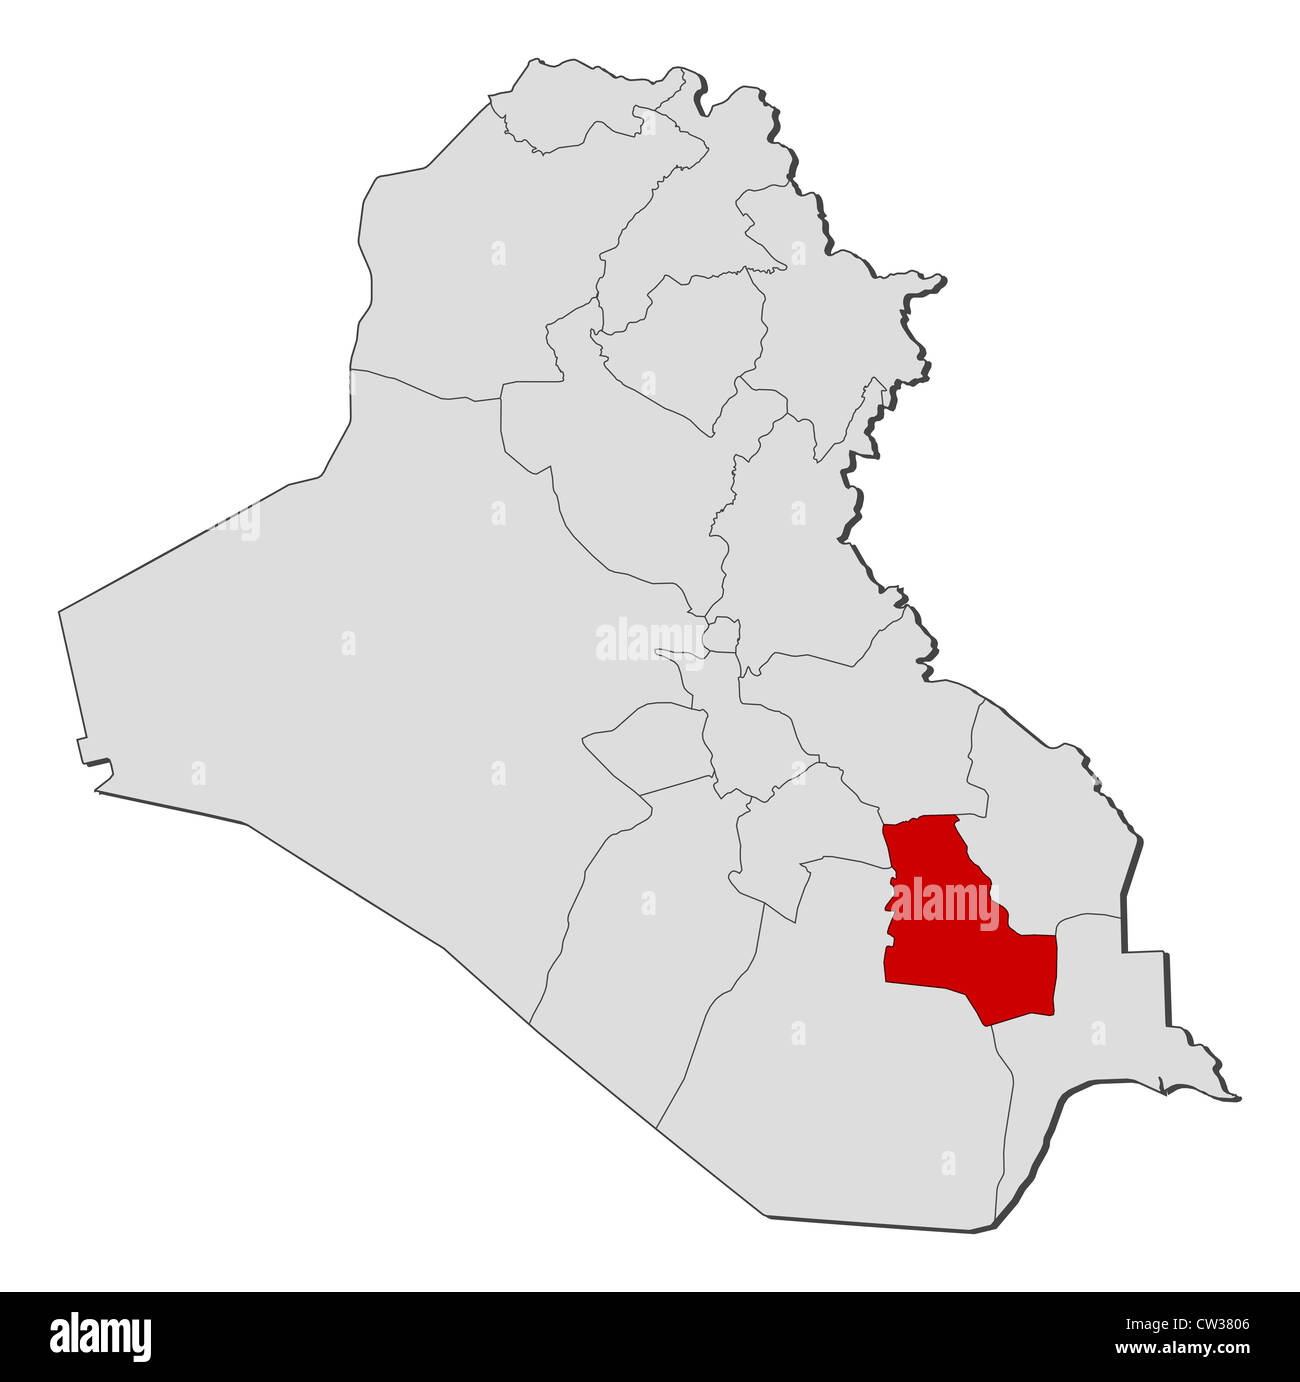 Political map of Iraq with the several governorates where Dhi Qar is